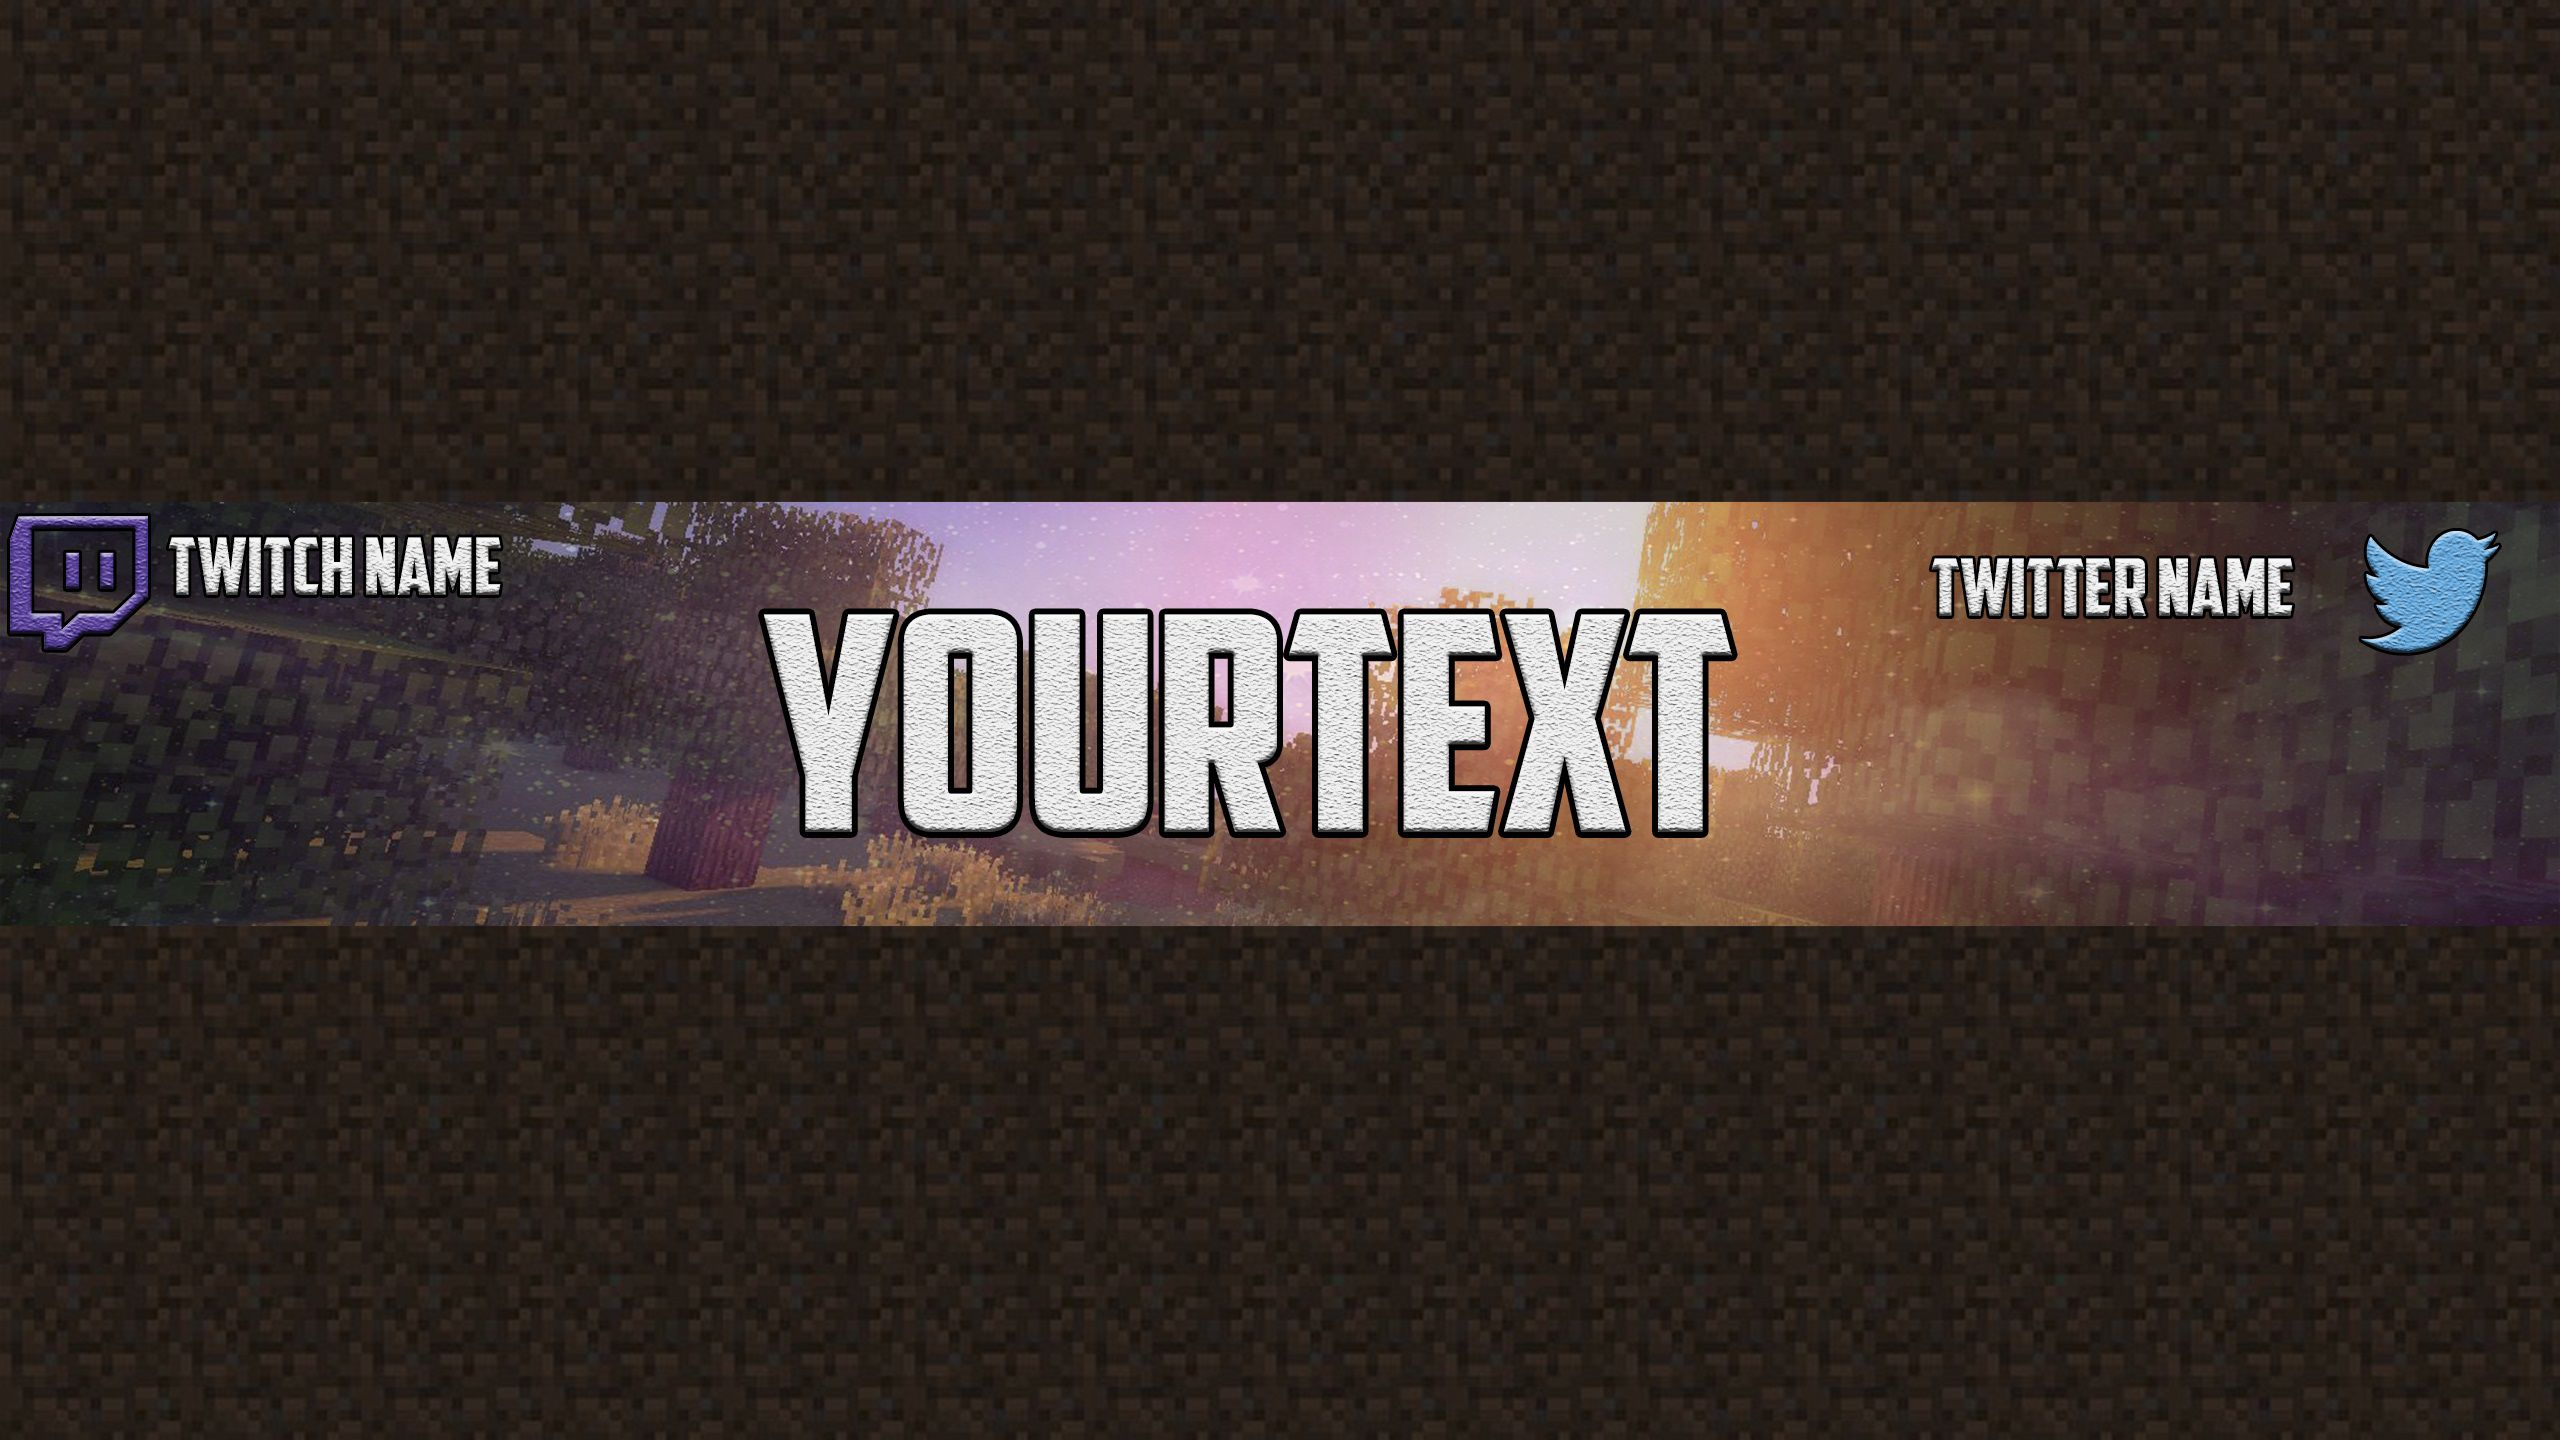 003 Rare Channel Art Template Photoshop Sample  Roblox Youtube CcFull